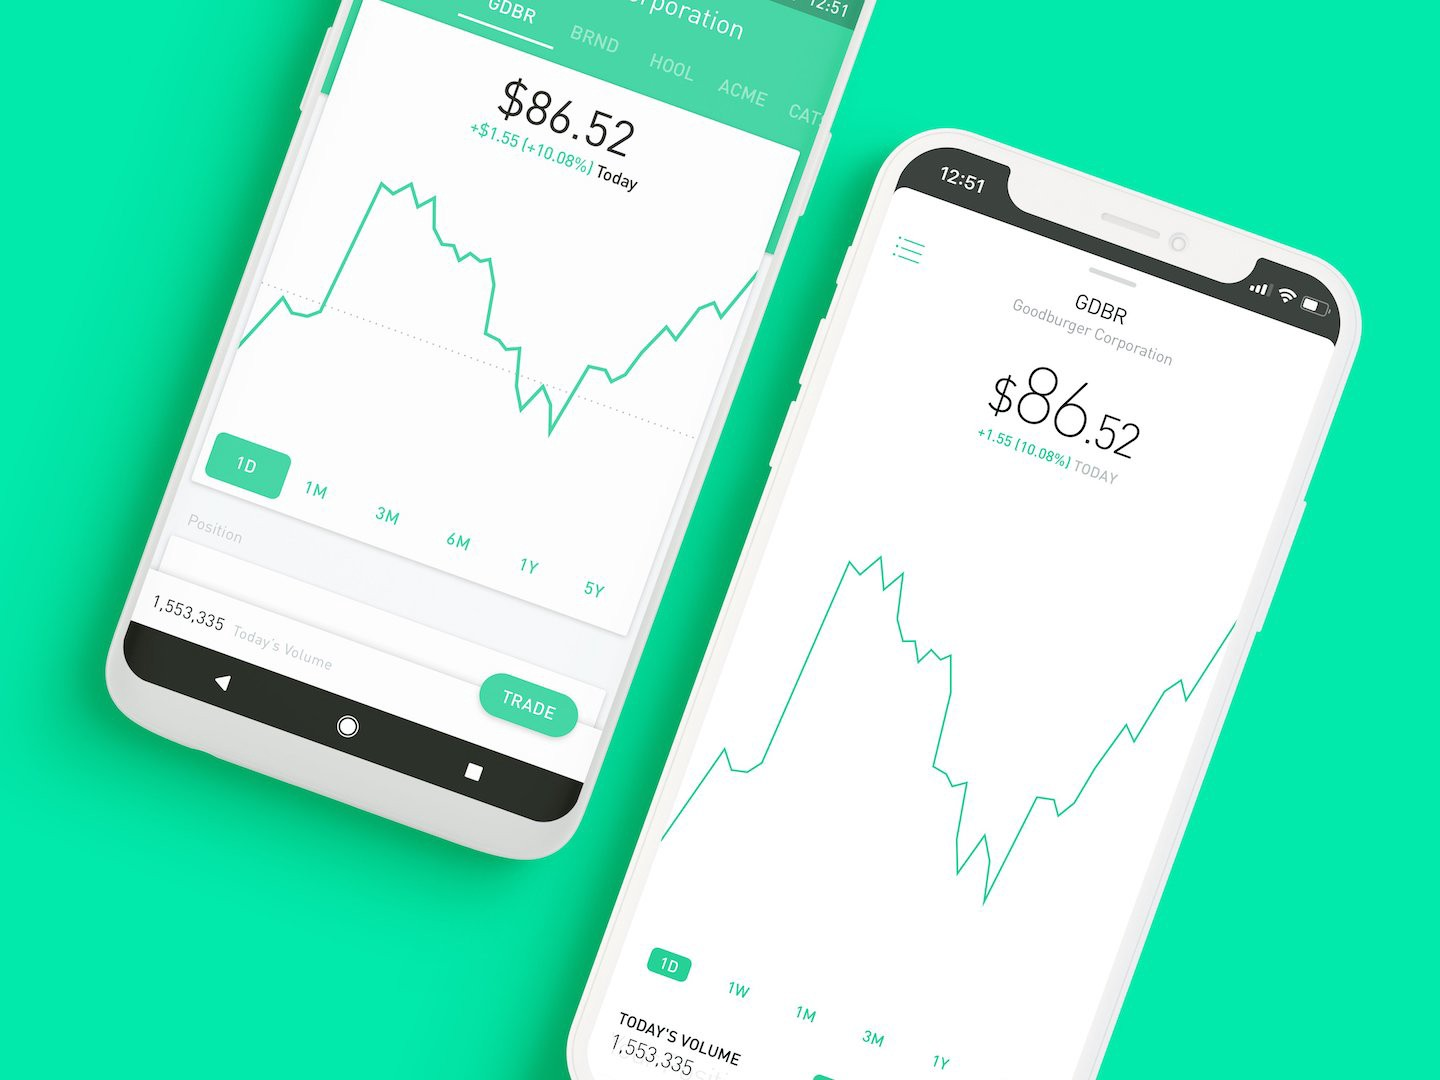 How To Find People To Join Robinhood